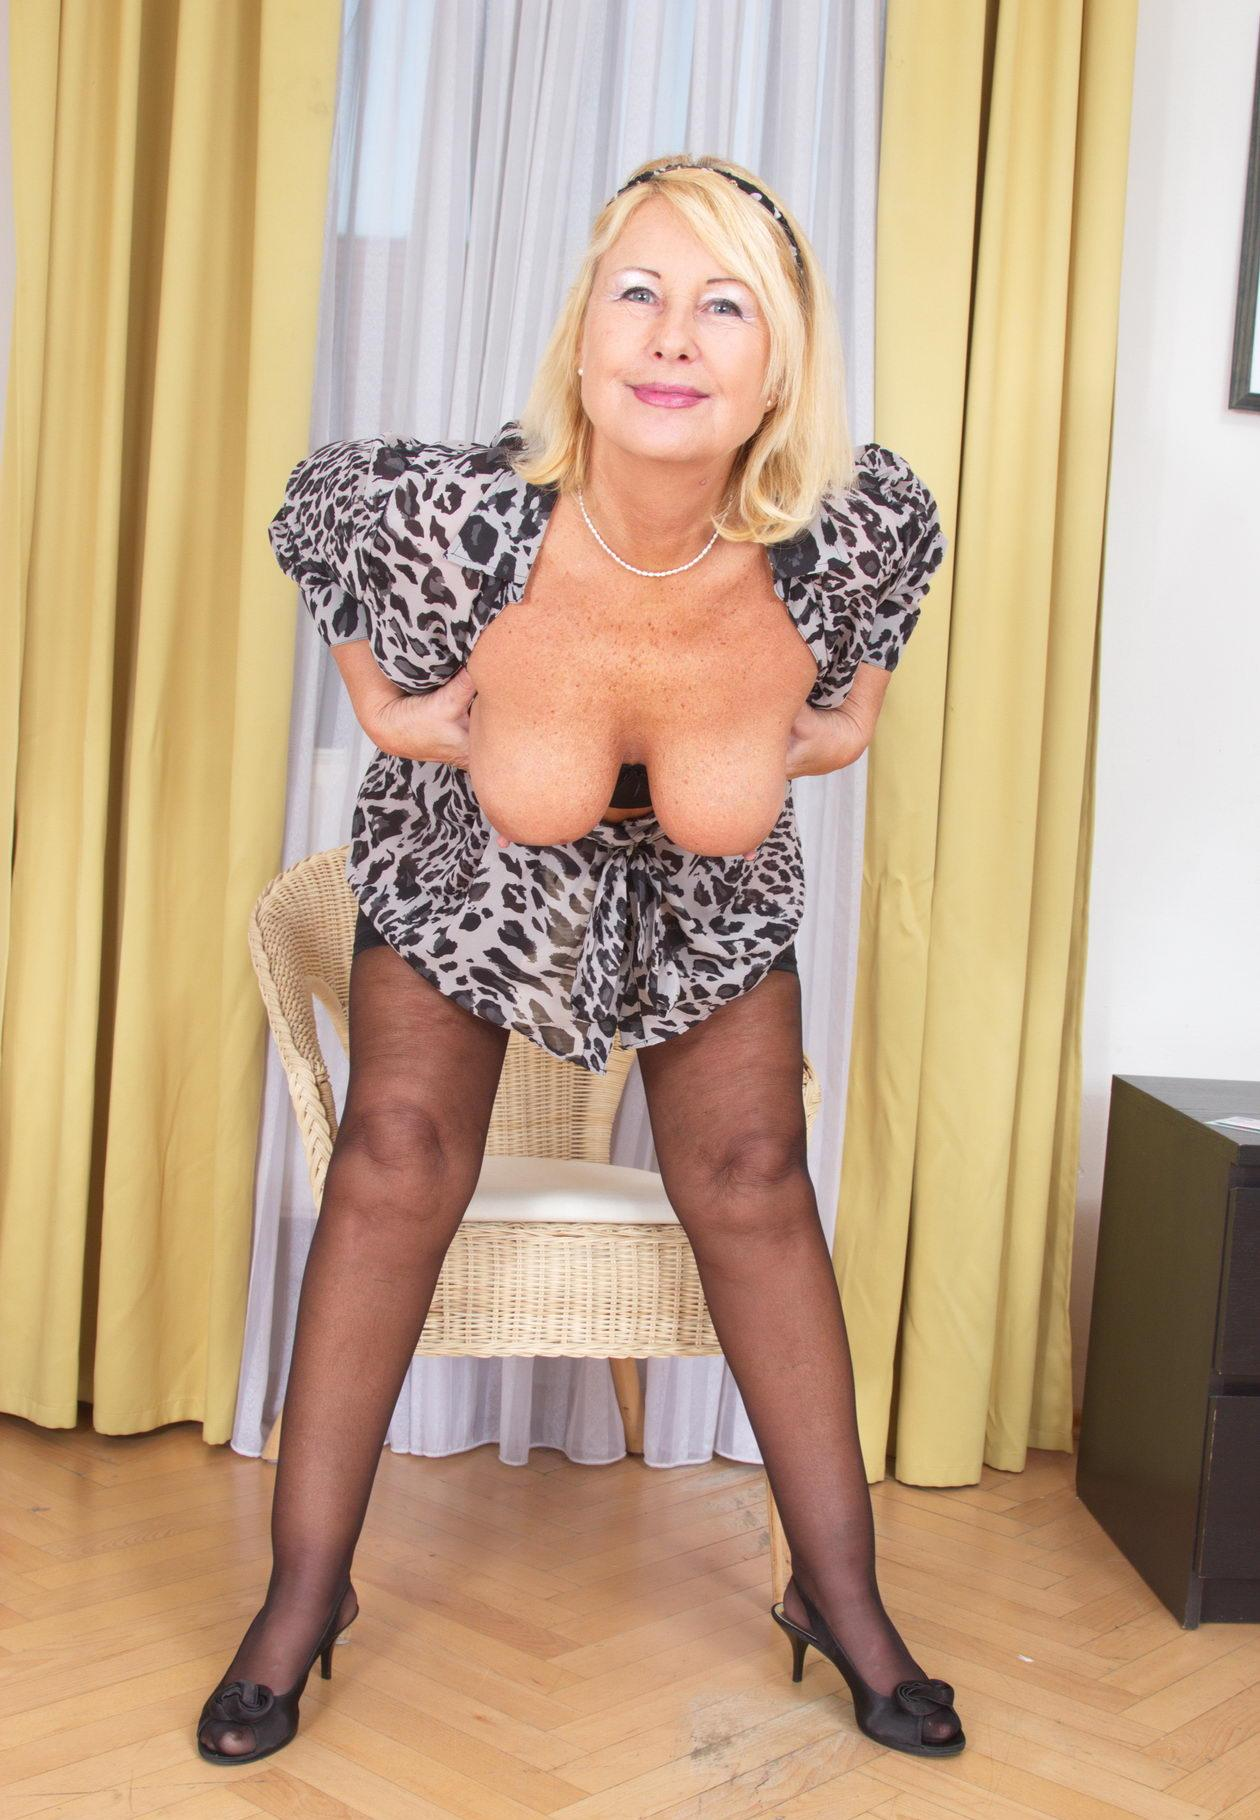 Shelby a 66 old desirable HOMEMADE GRANNY with a great downblouse view